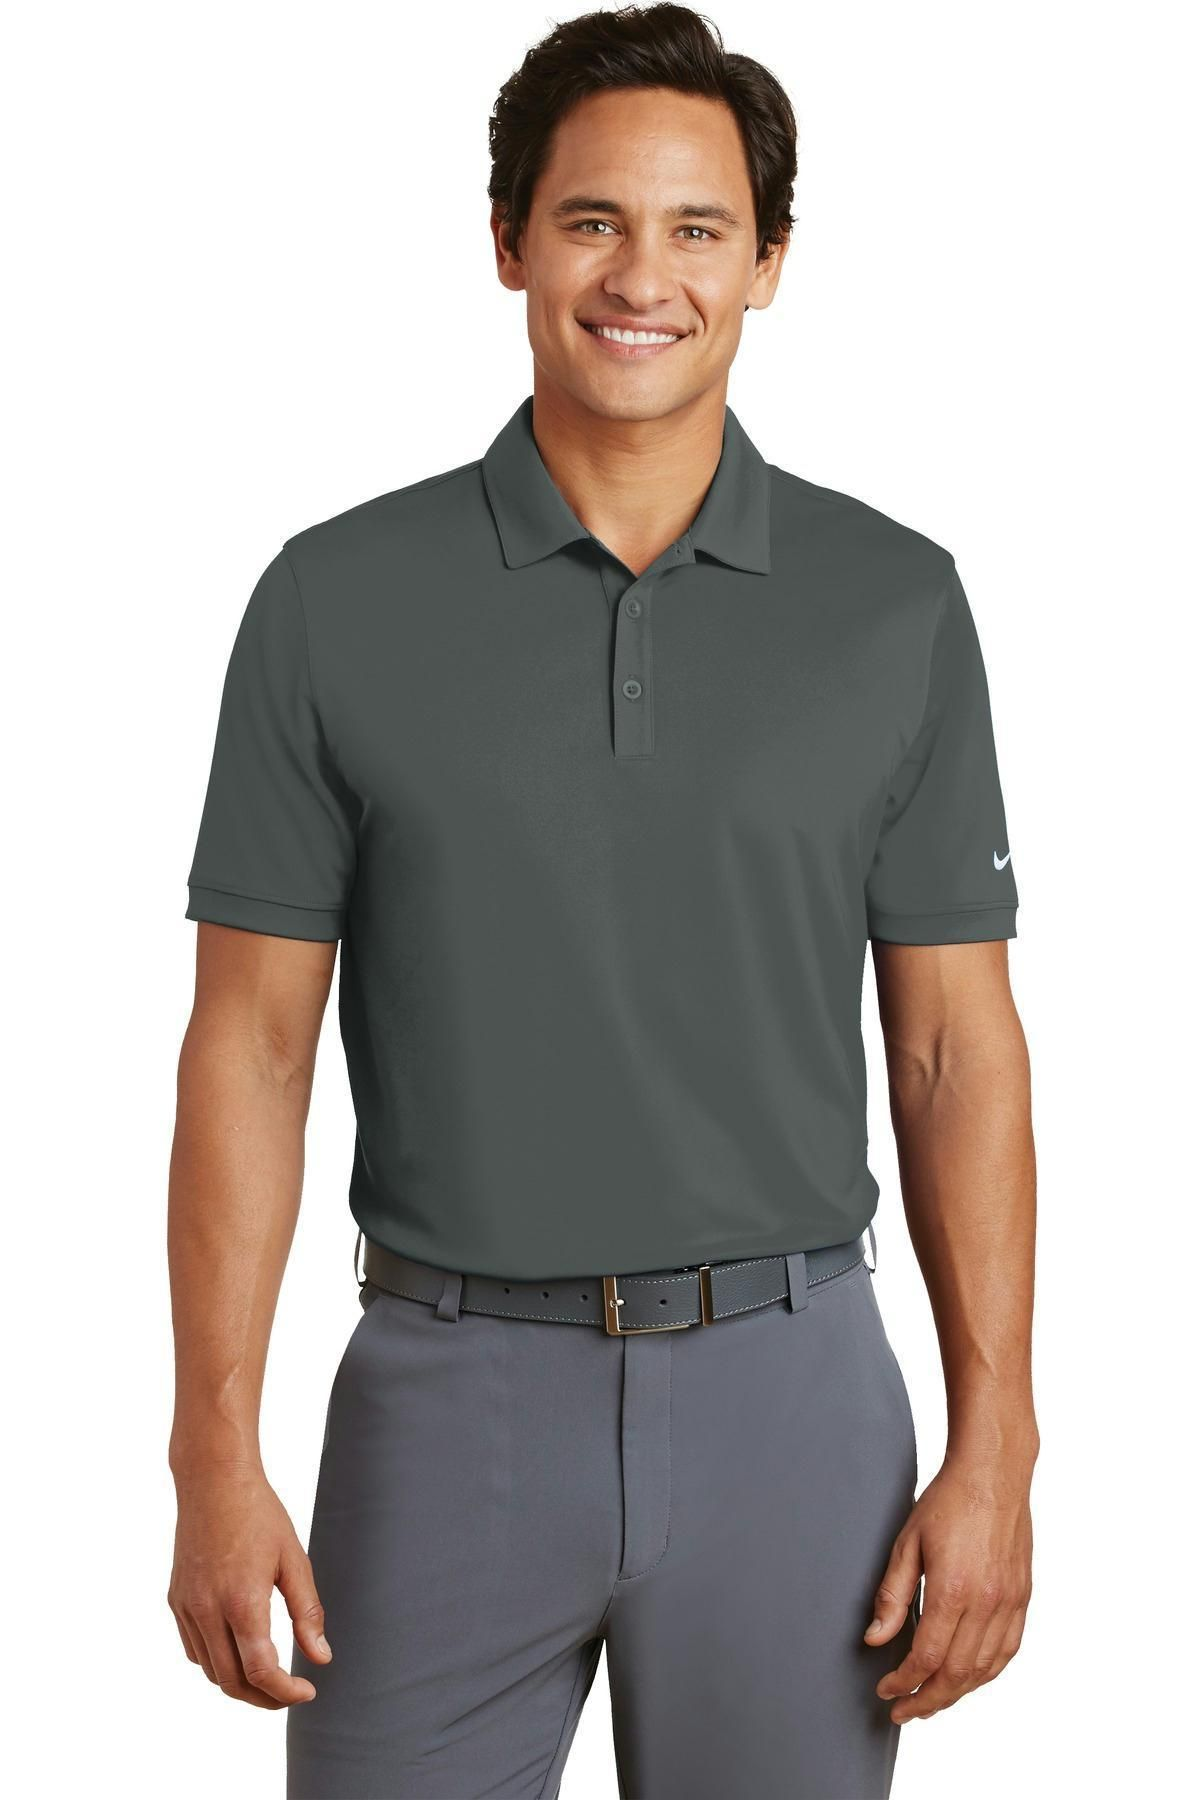 cb89b002 Nike Golf Dri-FIT Players Modern Fit Polo. 799802 | Polos and Products